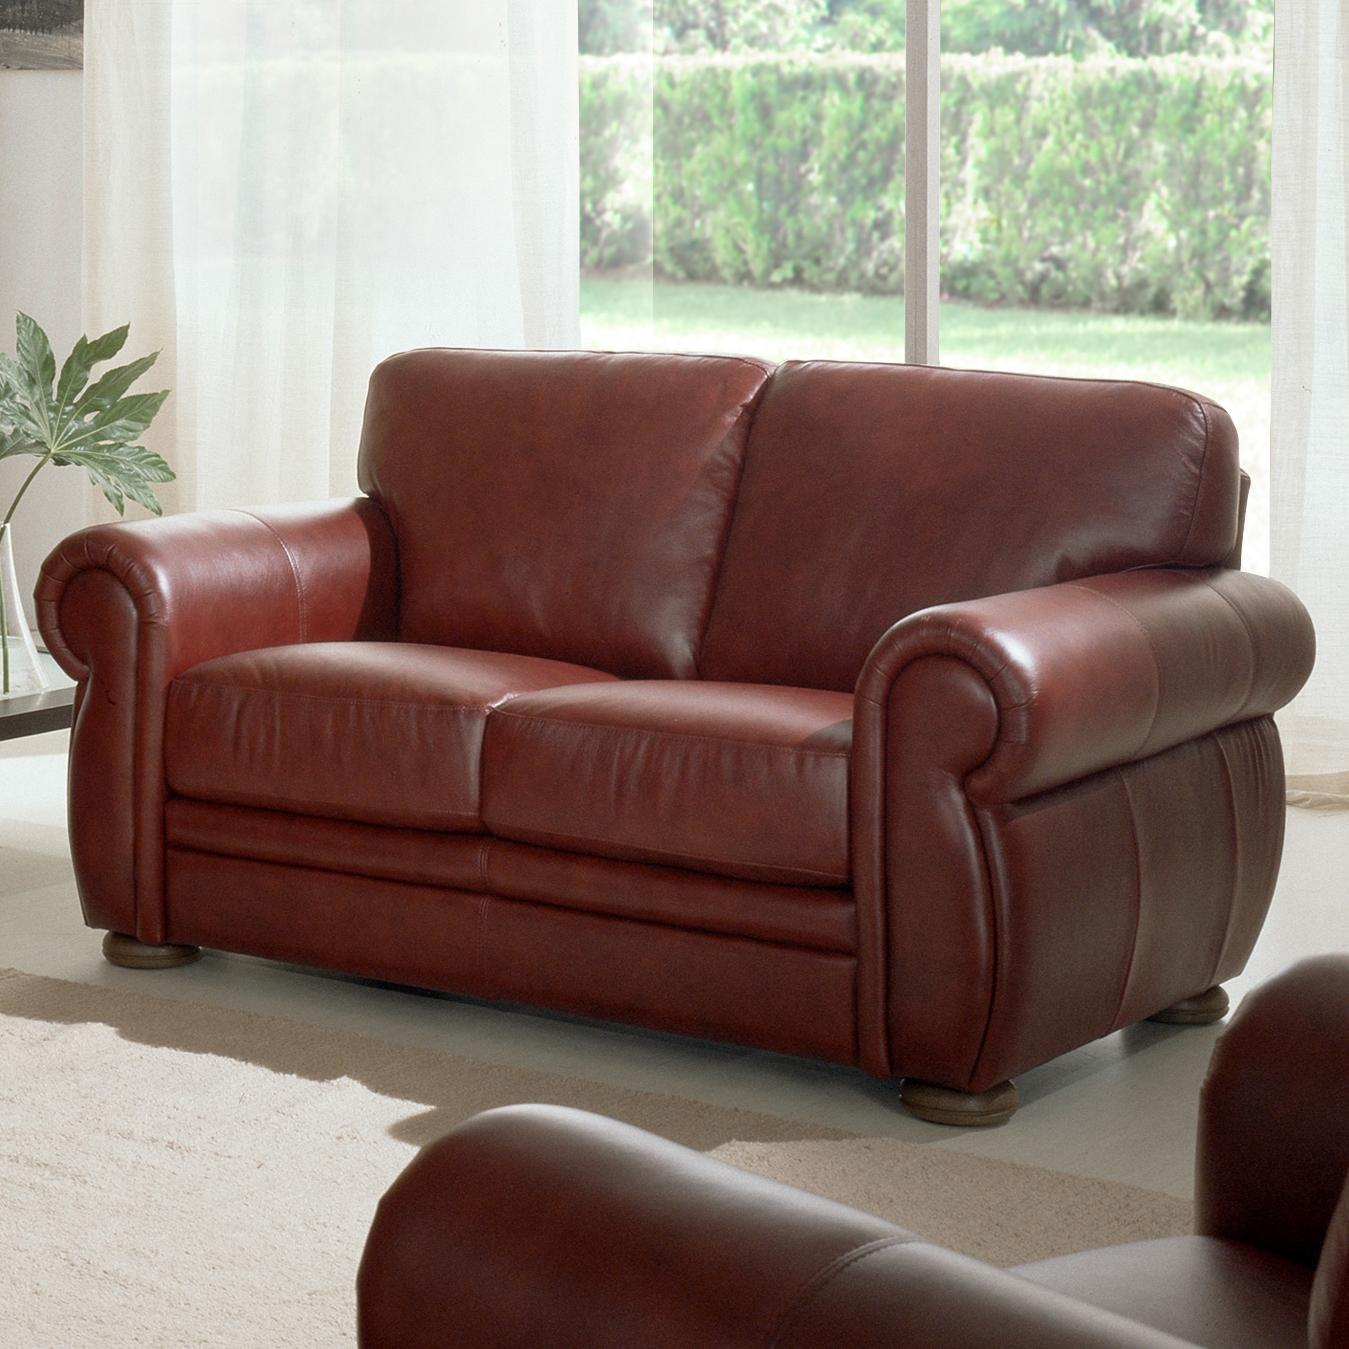 Chateau D'Ax C599 C599 DA - Item Number: C599 Loveseat